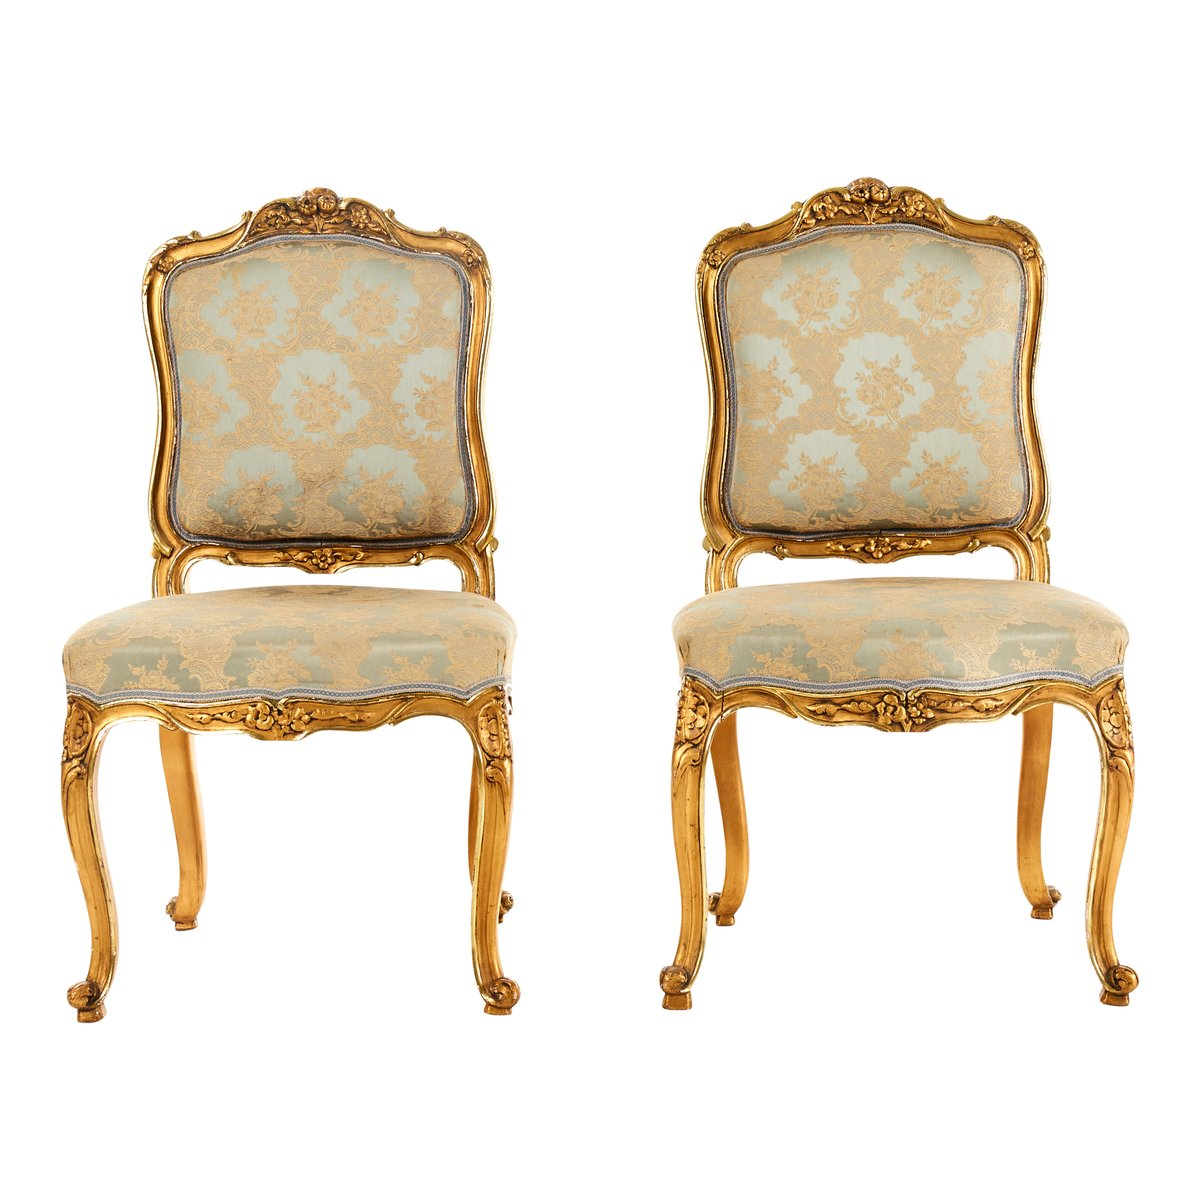 Z Chair For Sale Antique Louis Xv Style Chairs Set Of 2 For Sale At Pamono